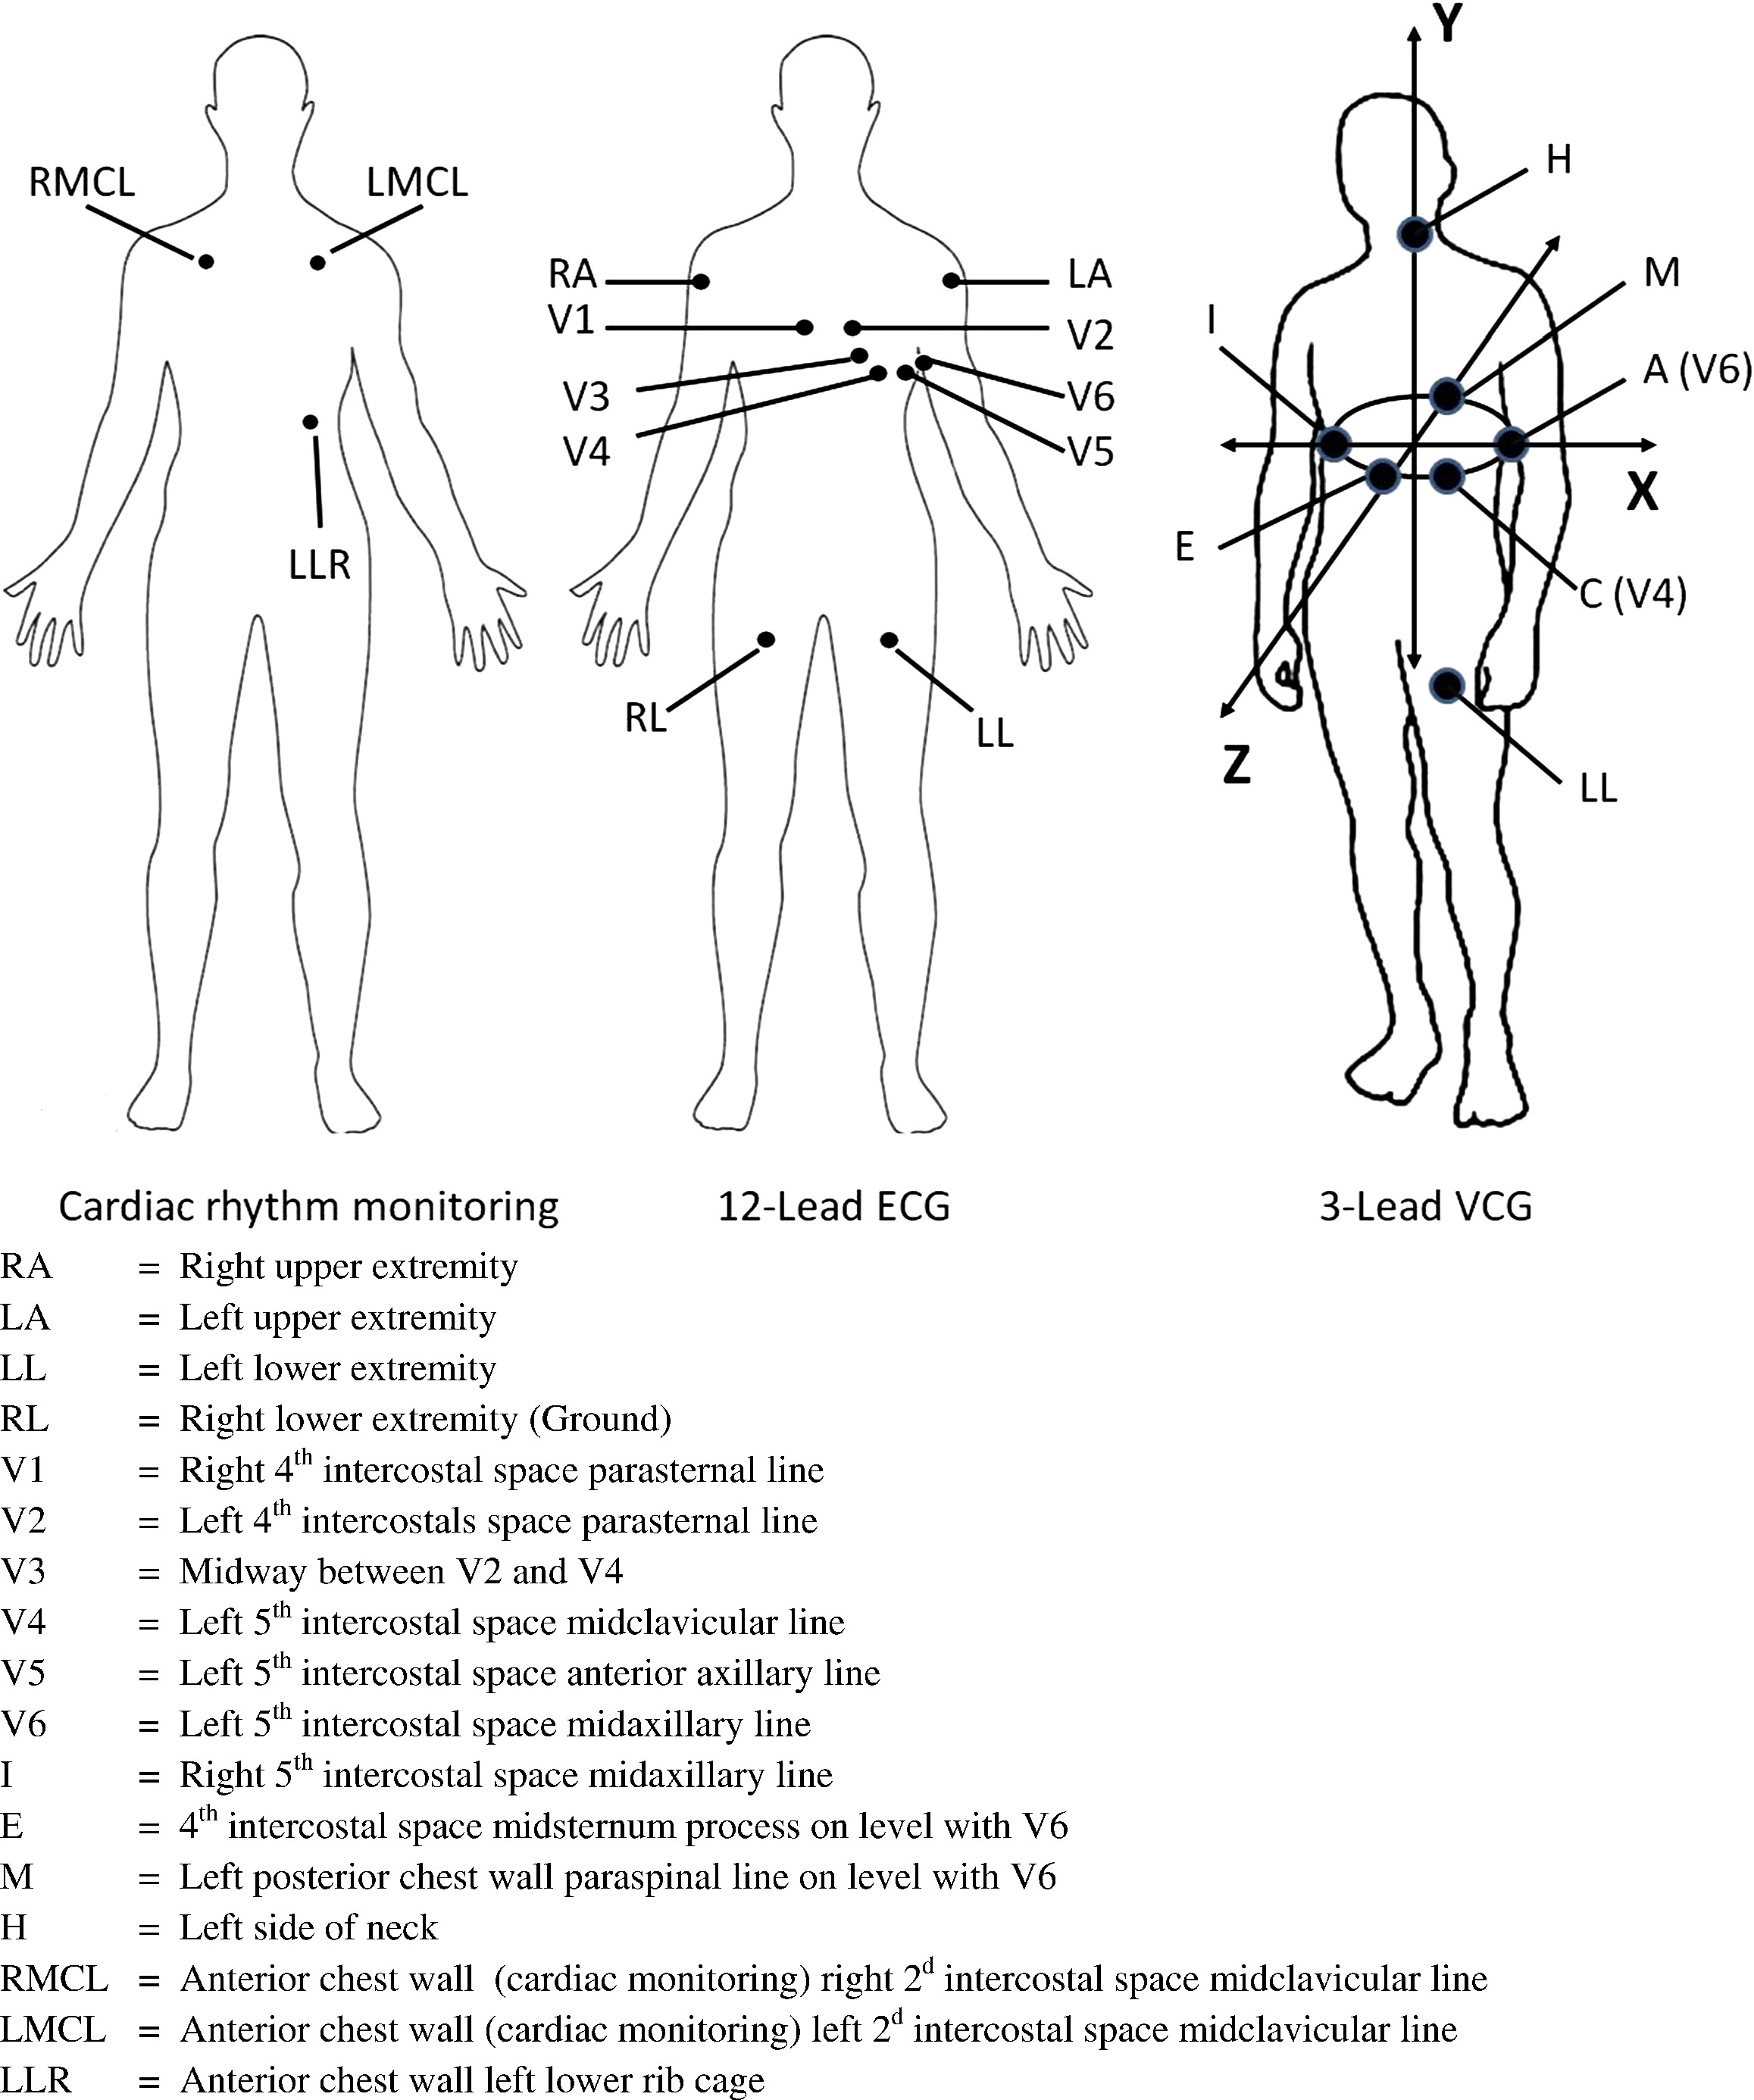 Derivation Of The 12-lead Electrocardiogram And 3-lead Vectorcardiogram